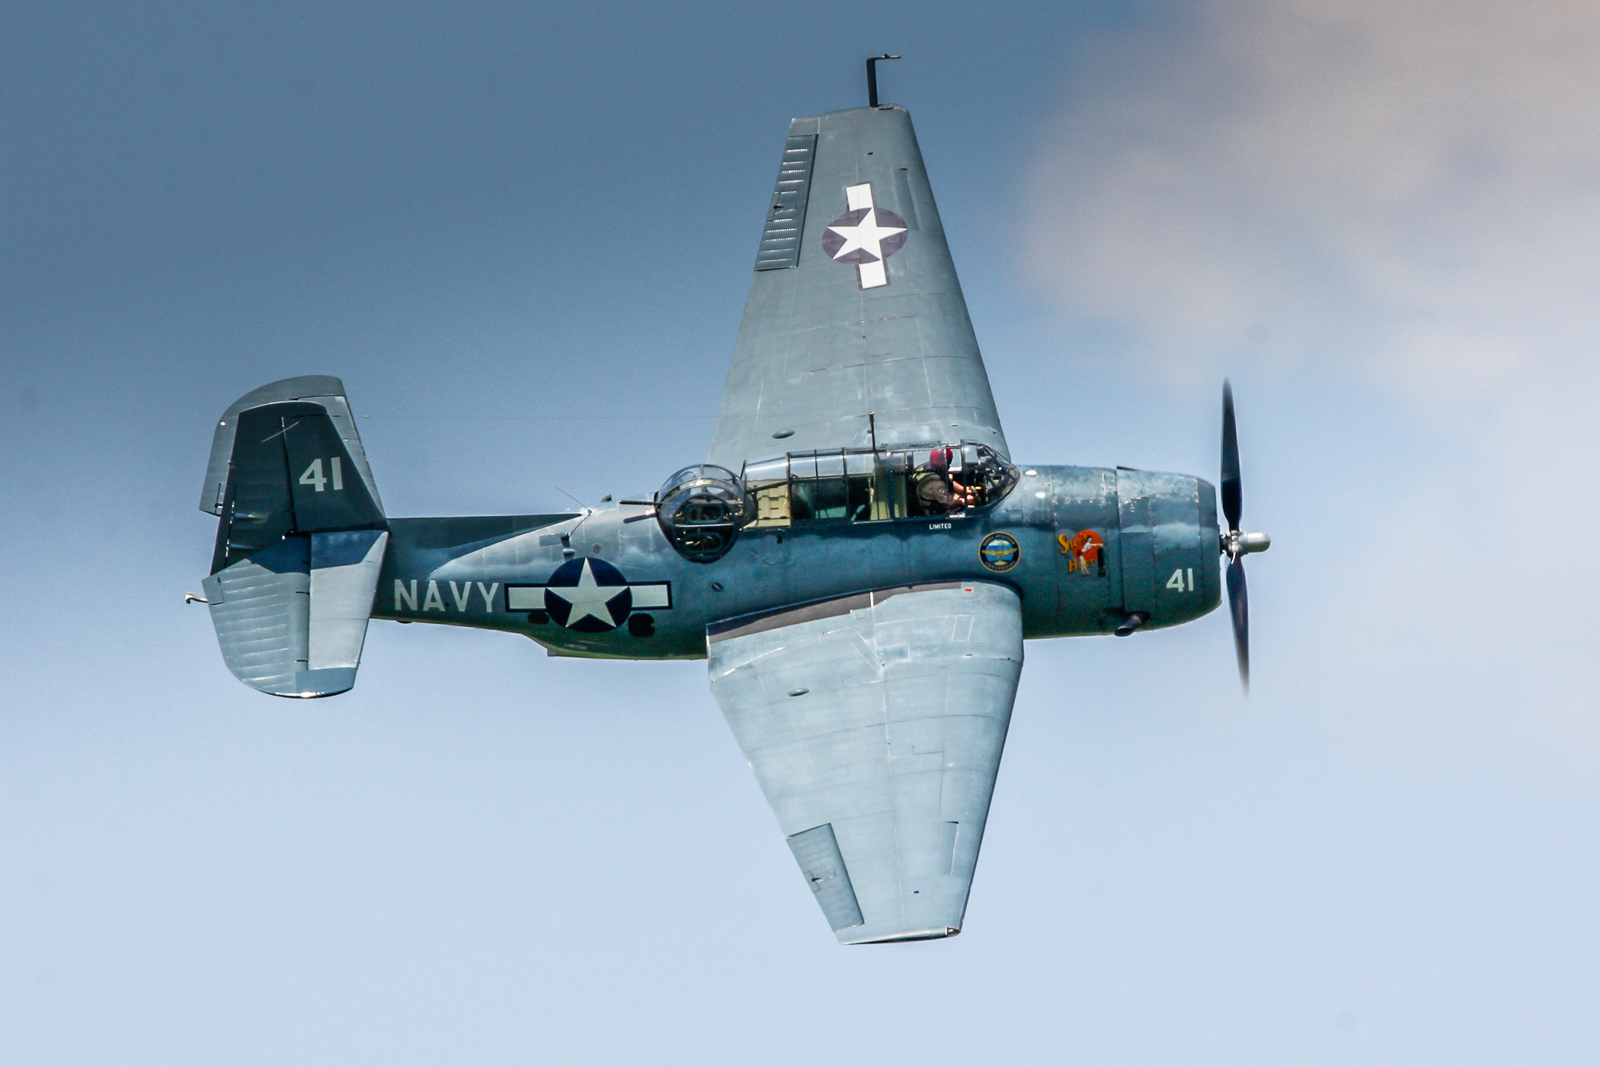 TBM Avenger flown by Charlie Lynch. (photo by Tom Pawlesh)